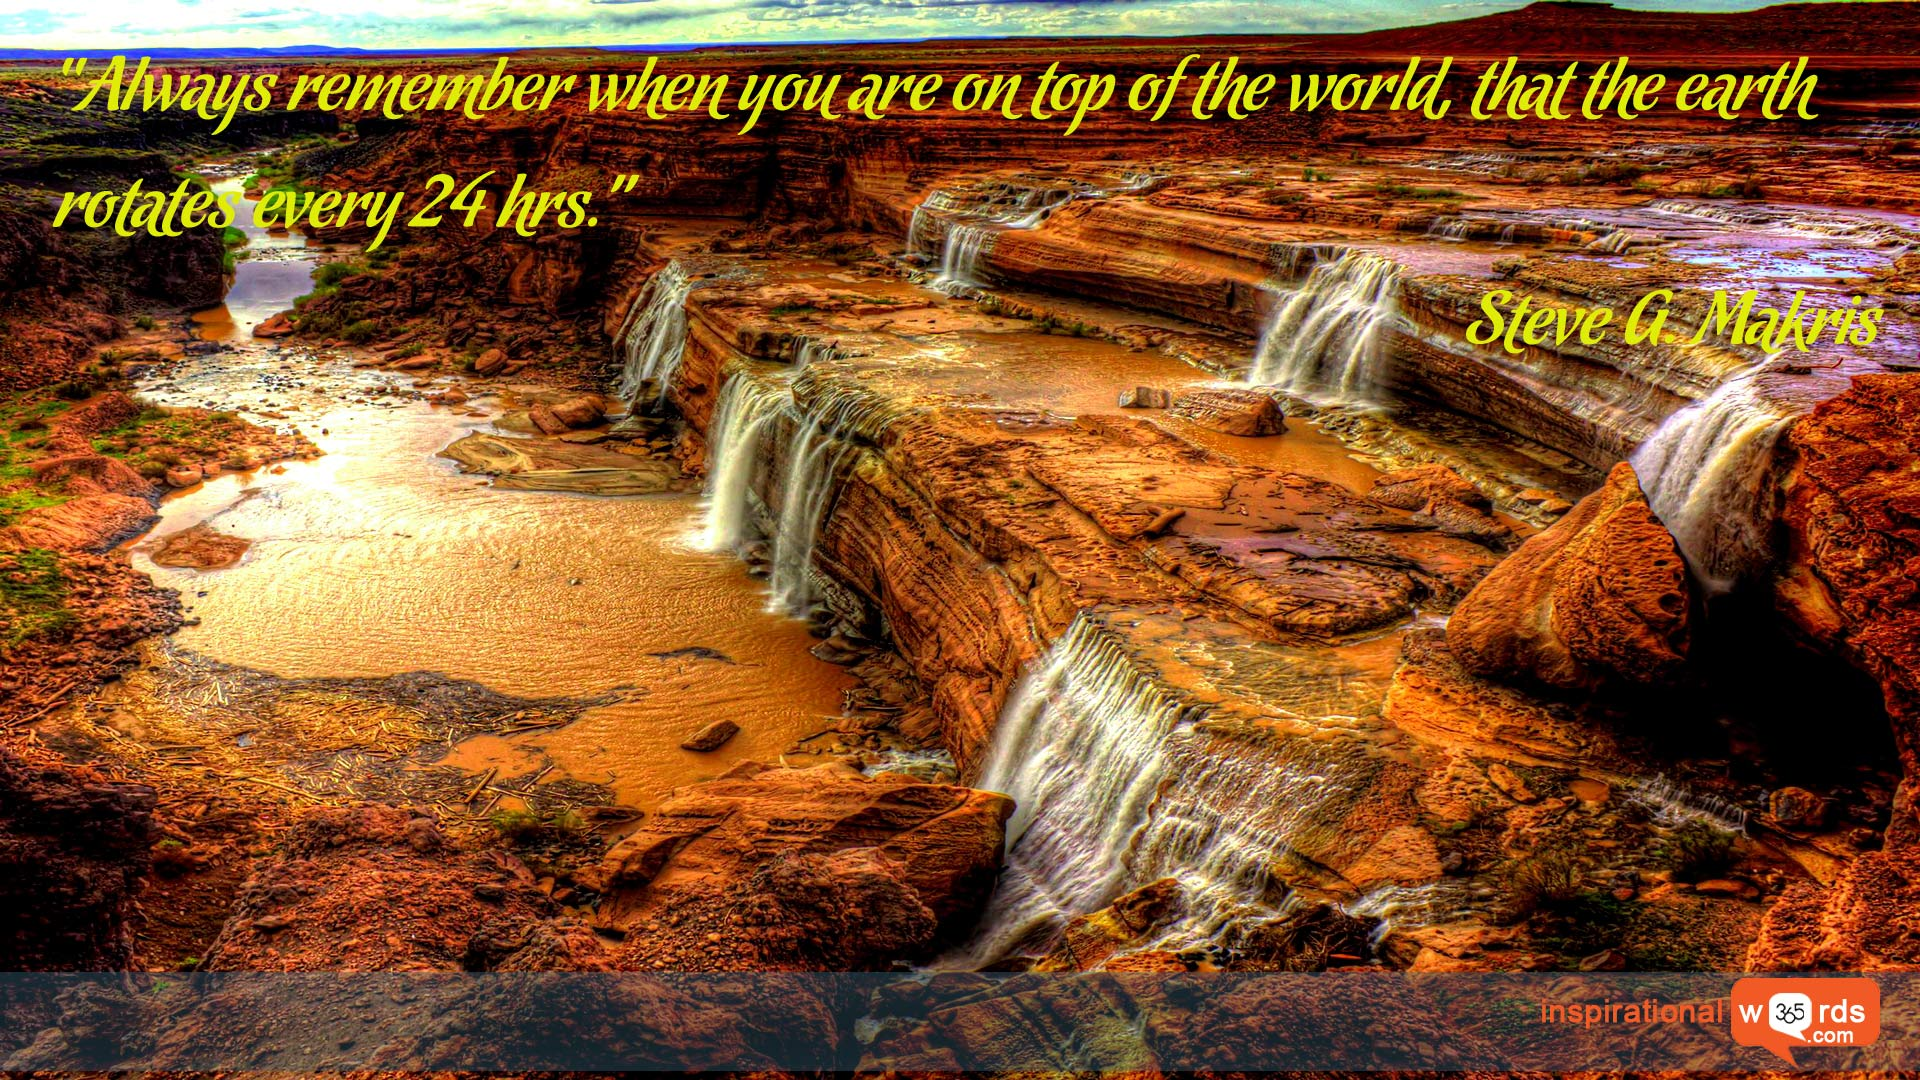 Inspirational Wallpaper Quote by Steve G. Makris